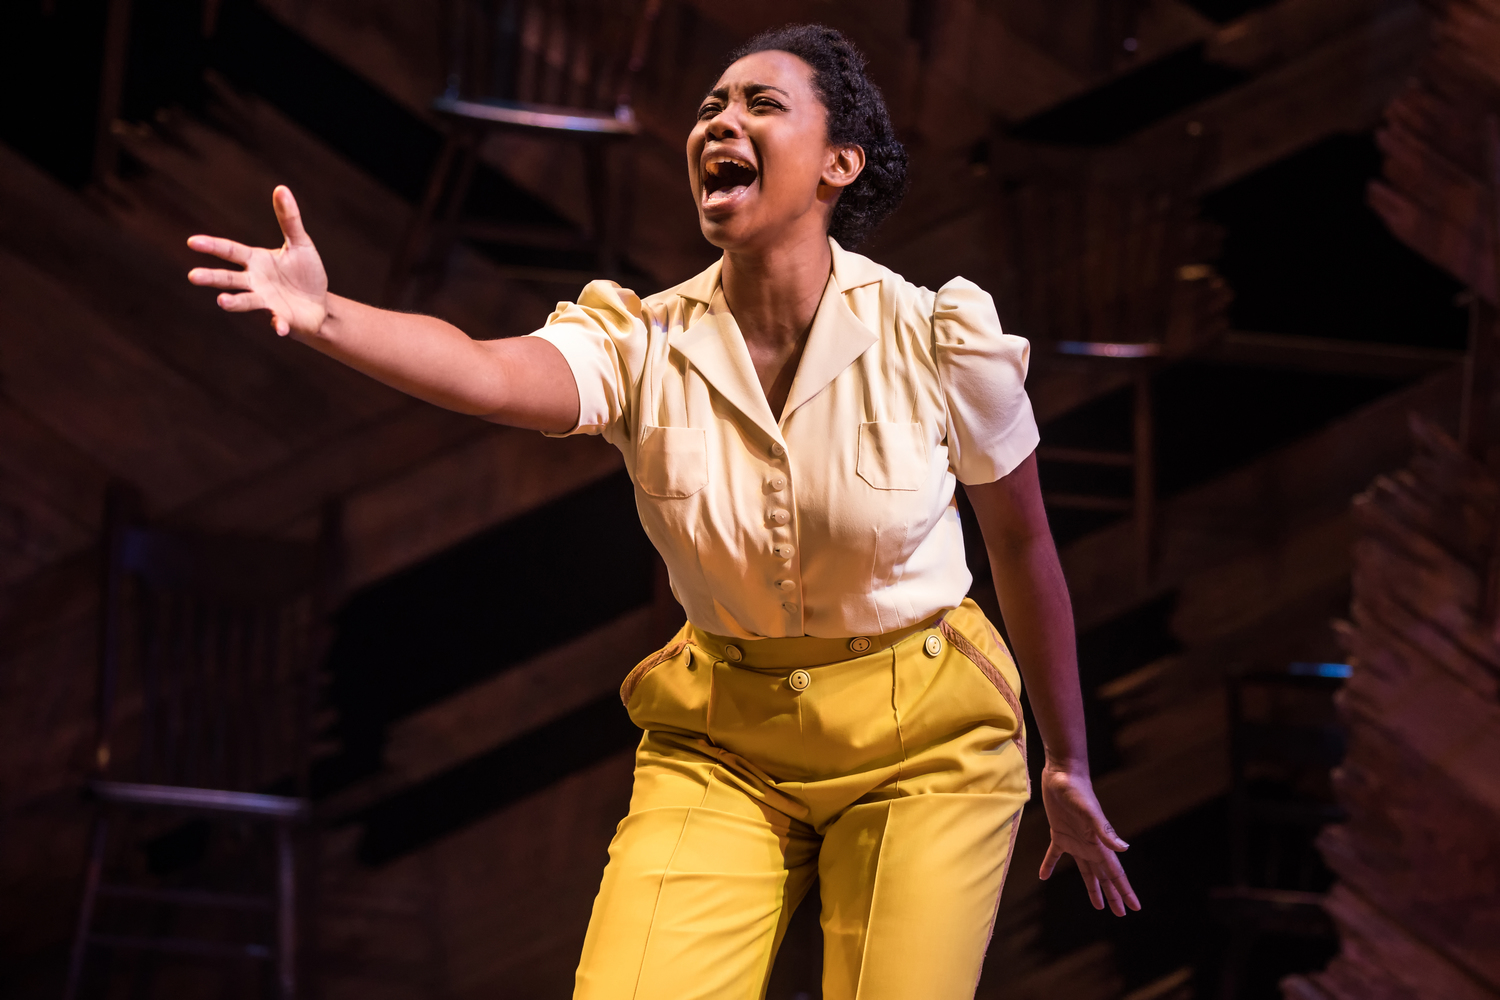 Regional Roundup: Top New Features This Week Around Our BroadwayWorld 4/6 - THE COLOR PURPLE, WAITRESS, WICKED and More!